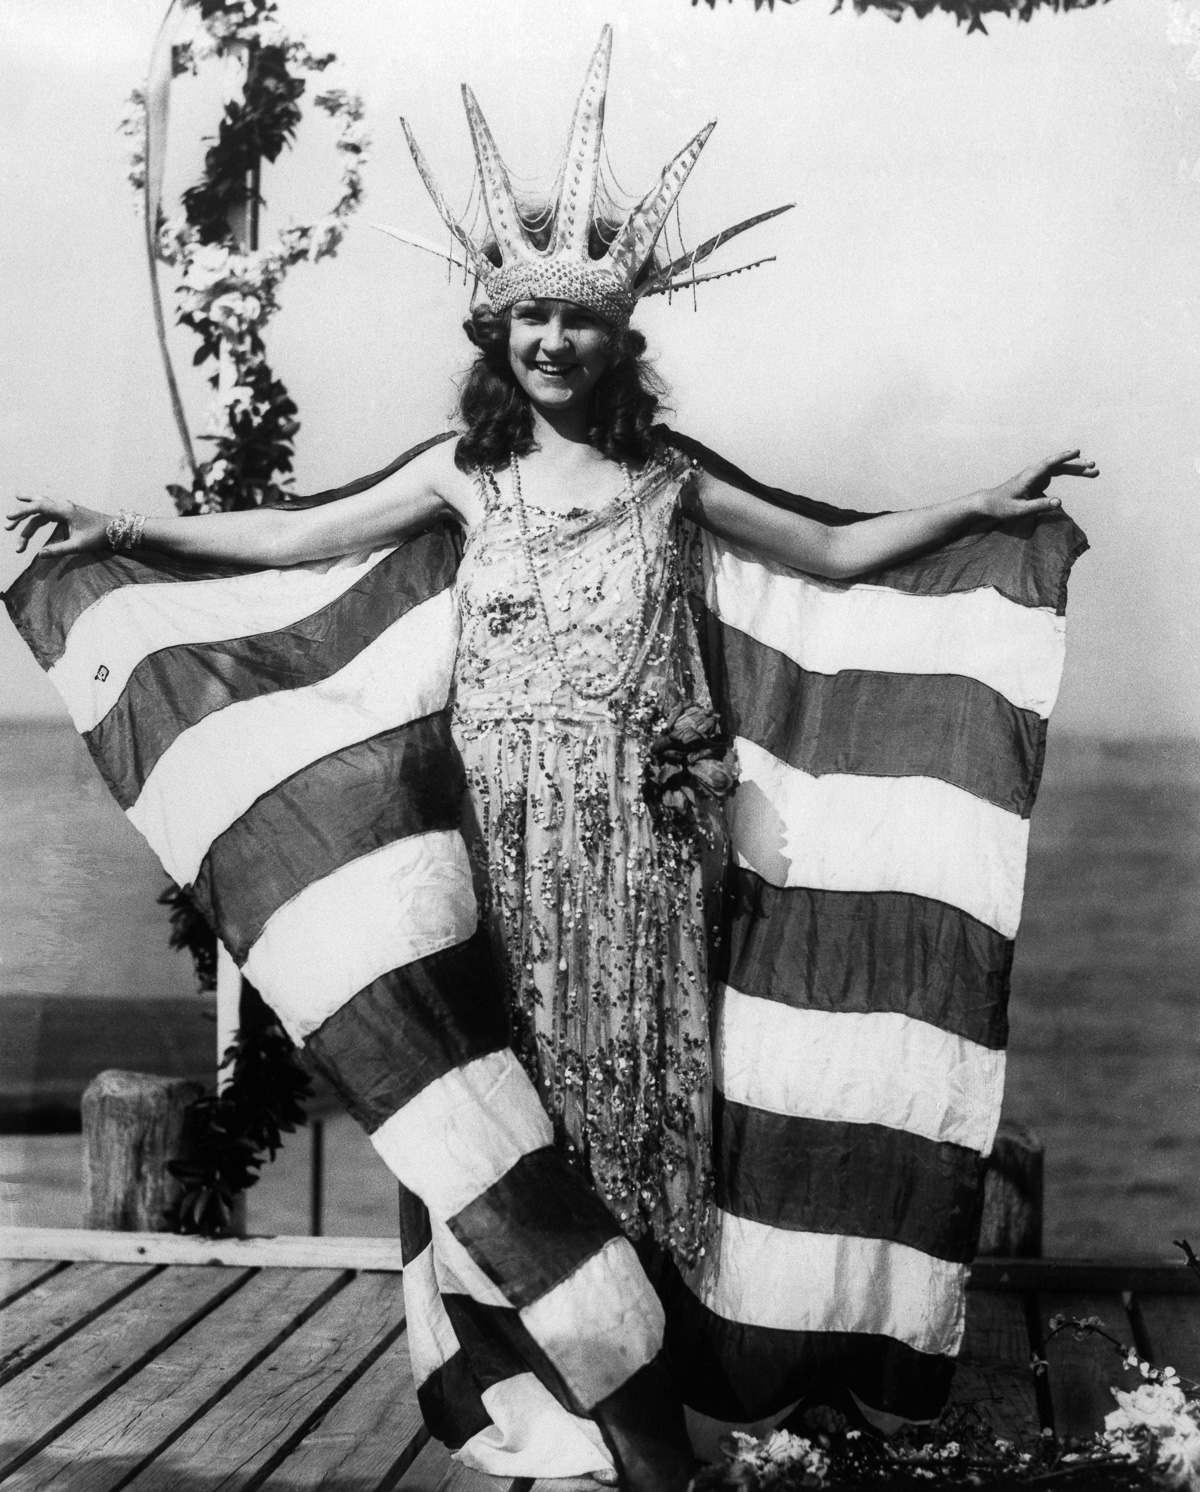 06 Sep 1922, Atlantic City, New Jersey, USA --- Original caption: Miss Margaret Gorman--Miss America--awaits the arrival of 'Neptune' on the yacht club dock, on the opening day of the National Beauty Pageant. --- Image by © Bettmann/CORBIS